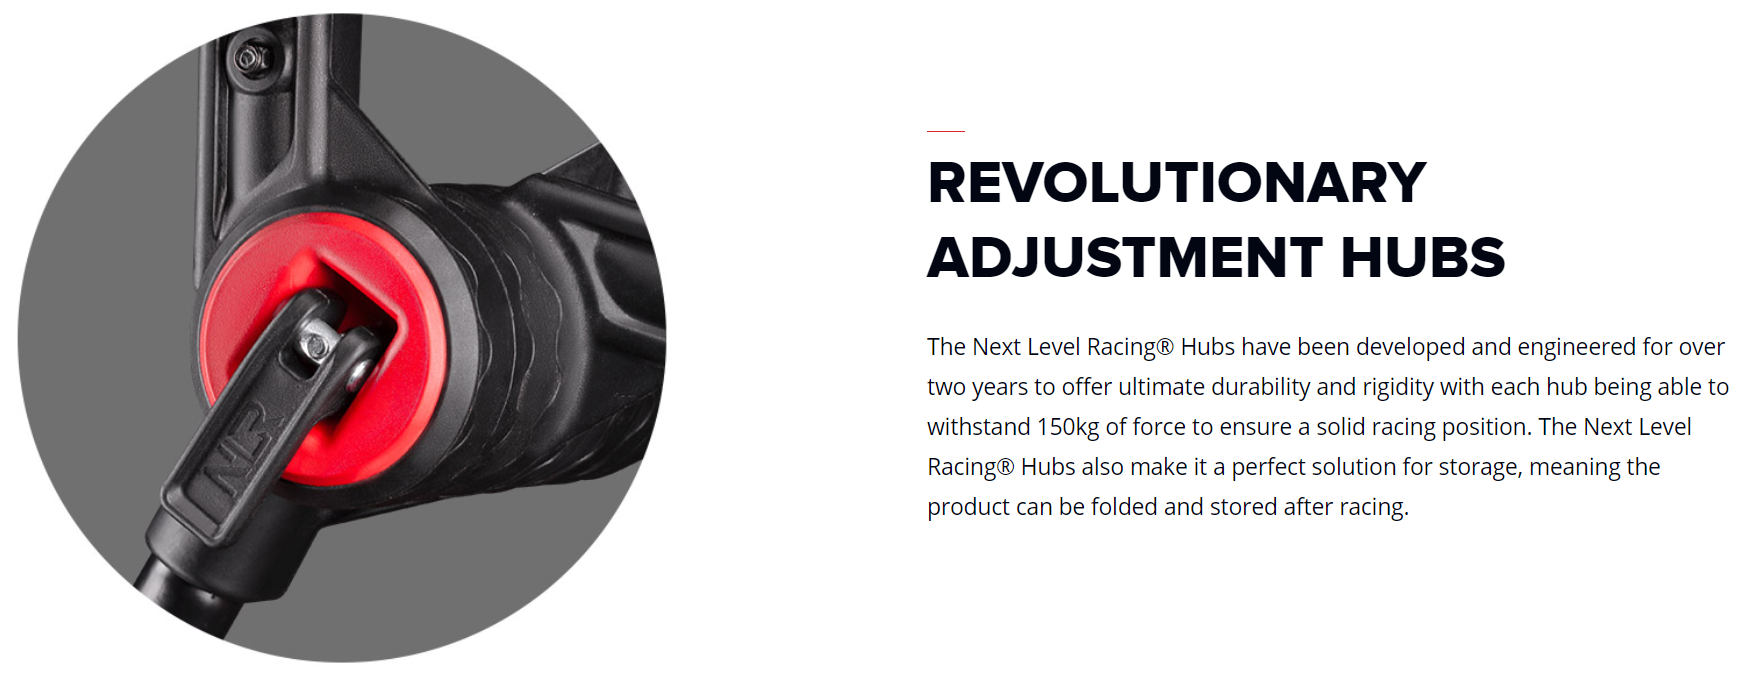 The Next Level Racing® Hubs have been developed and engineered for over two years to offer ultimate durability and rigidity with each hub being able to withstand 150kg of force to ensure a solid racing position. The Next Level Racing® Hubs also make it a perfect solution for storage, meaning the product can be folded and stored after racing.